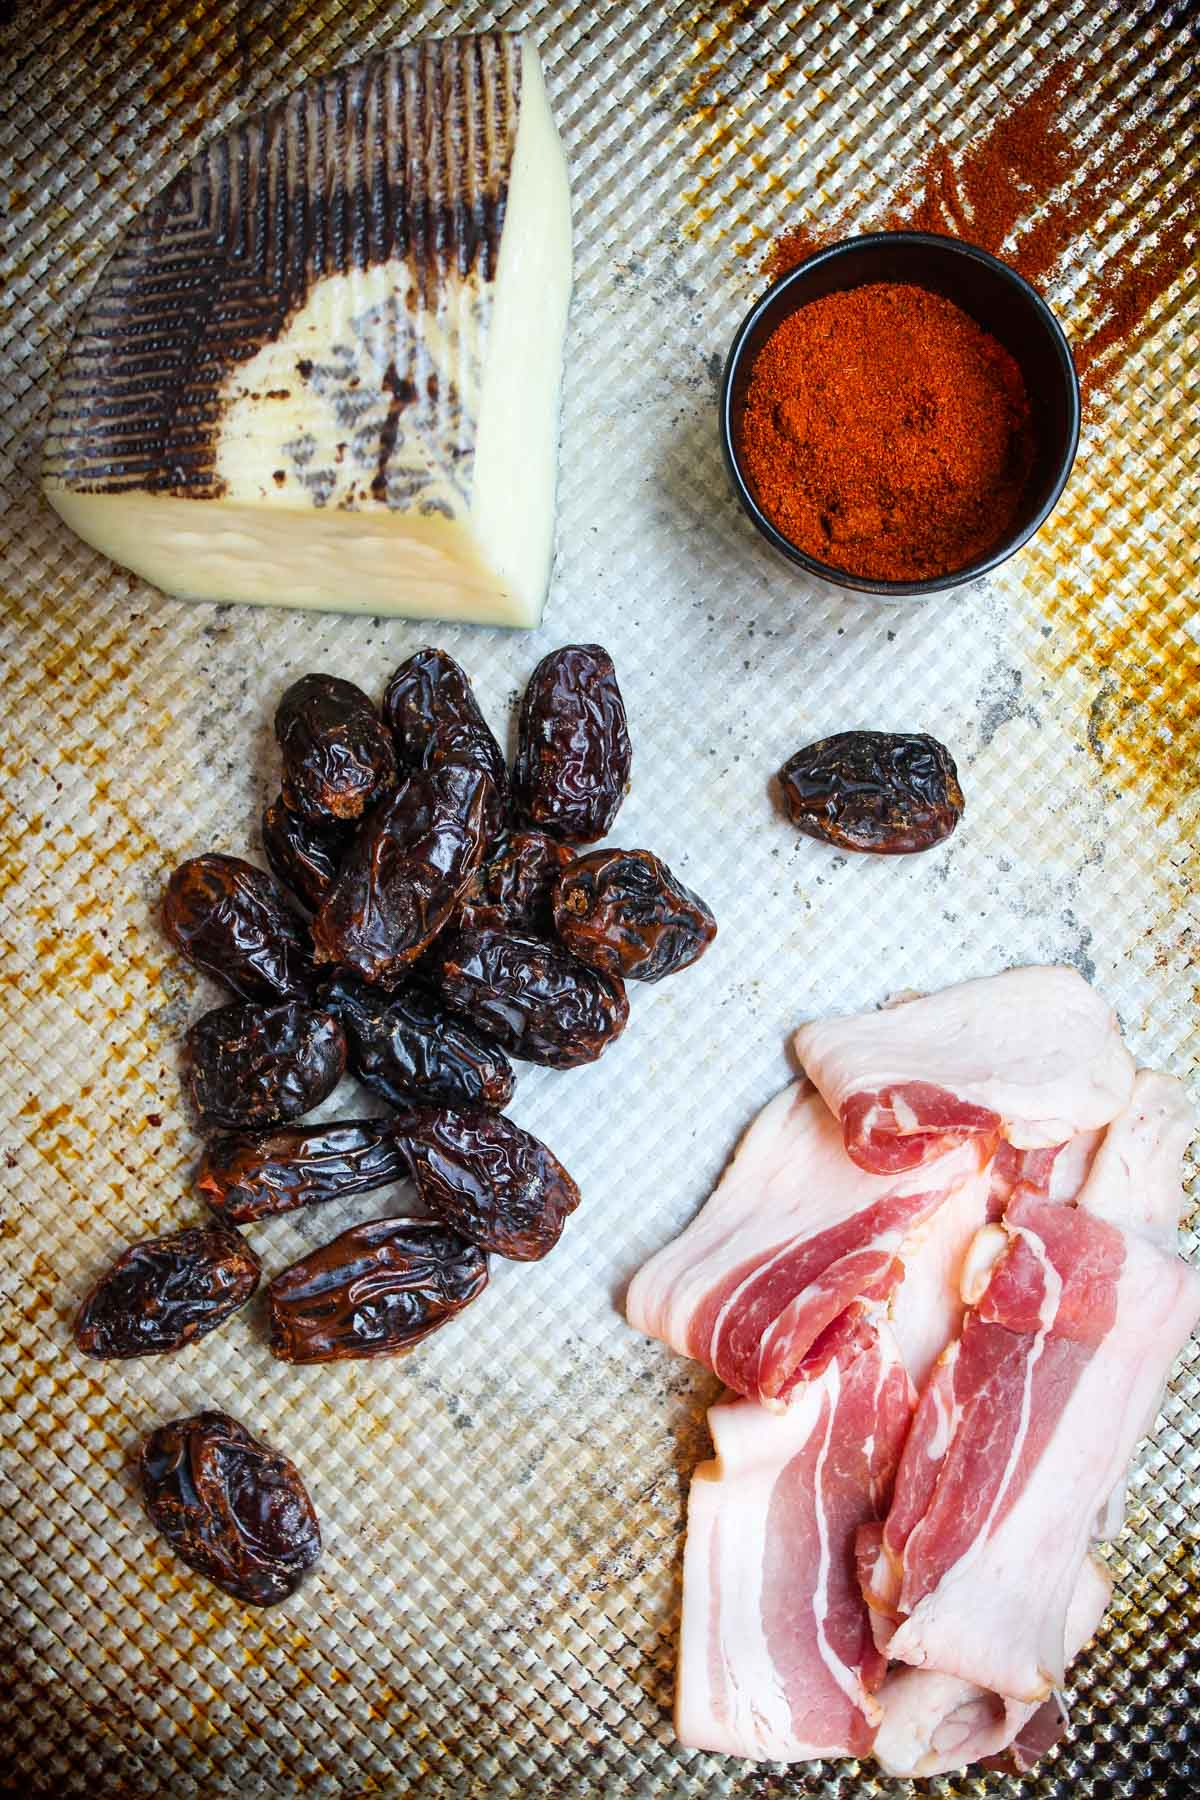 Chili Bacon Wrapped Dates with Manchego | Easy Appetizer | Gluten Free Recipe - These chili bacon wrapped dates with Manchego are a savory, salty-sweet appetizer with a spicy kick! Only 4 ingredients. An easy recipe and a perfect appetizer for a party or any type of gathering! | passmesometasty.com